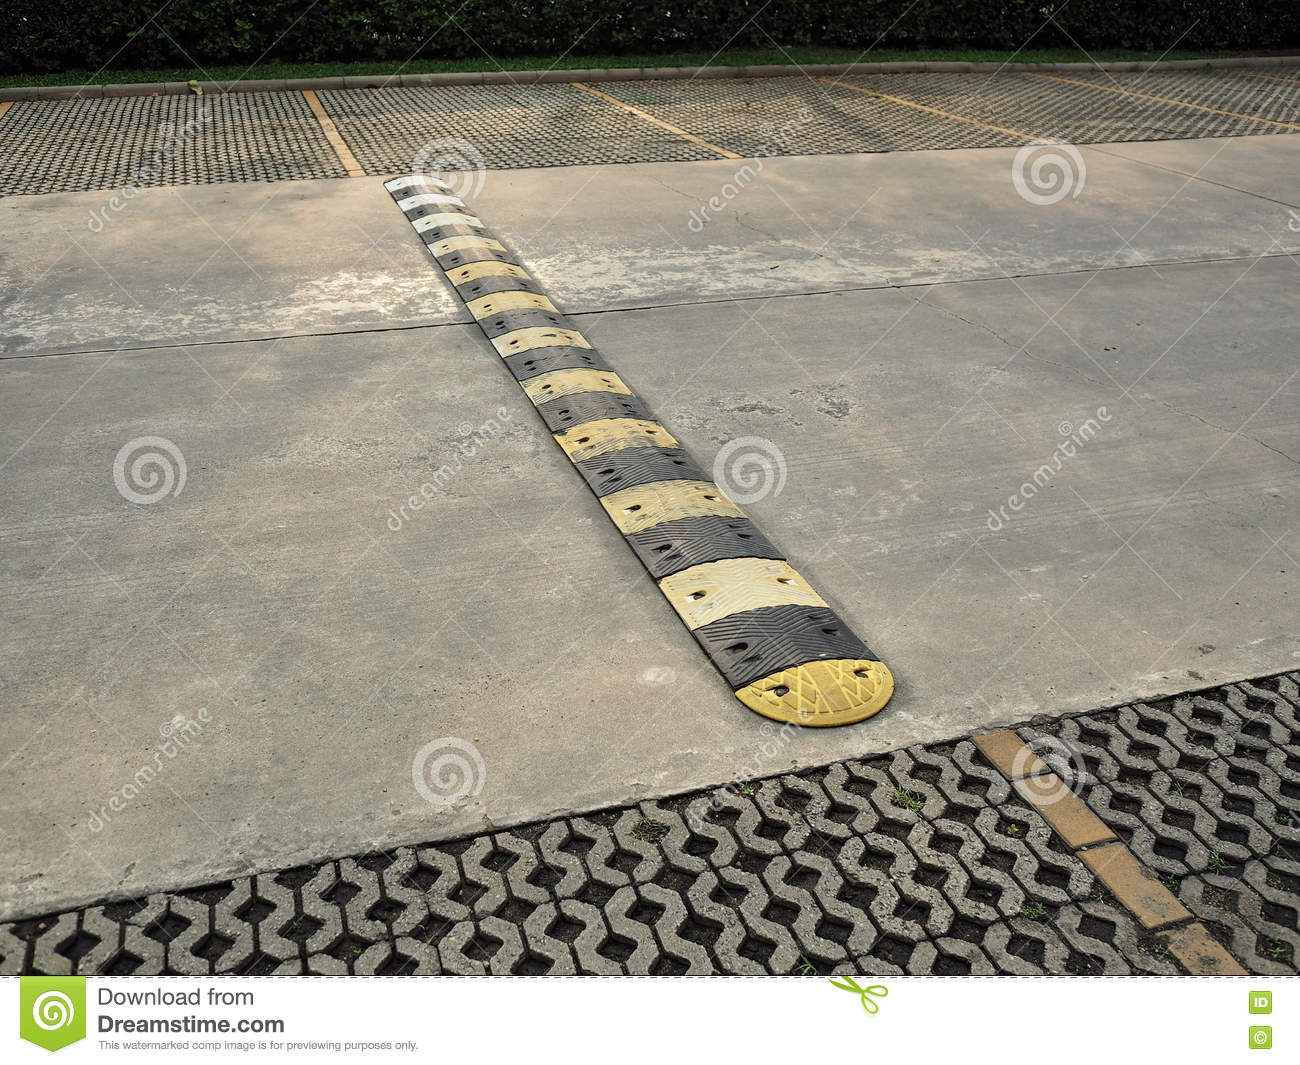 An old pale yellow and black traffic safety speed bump on a concrete road  at parking lot